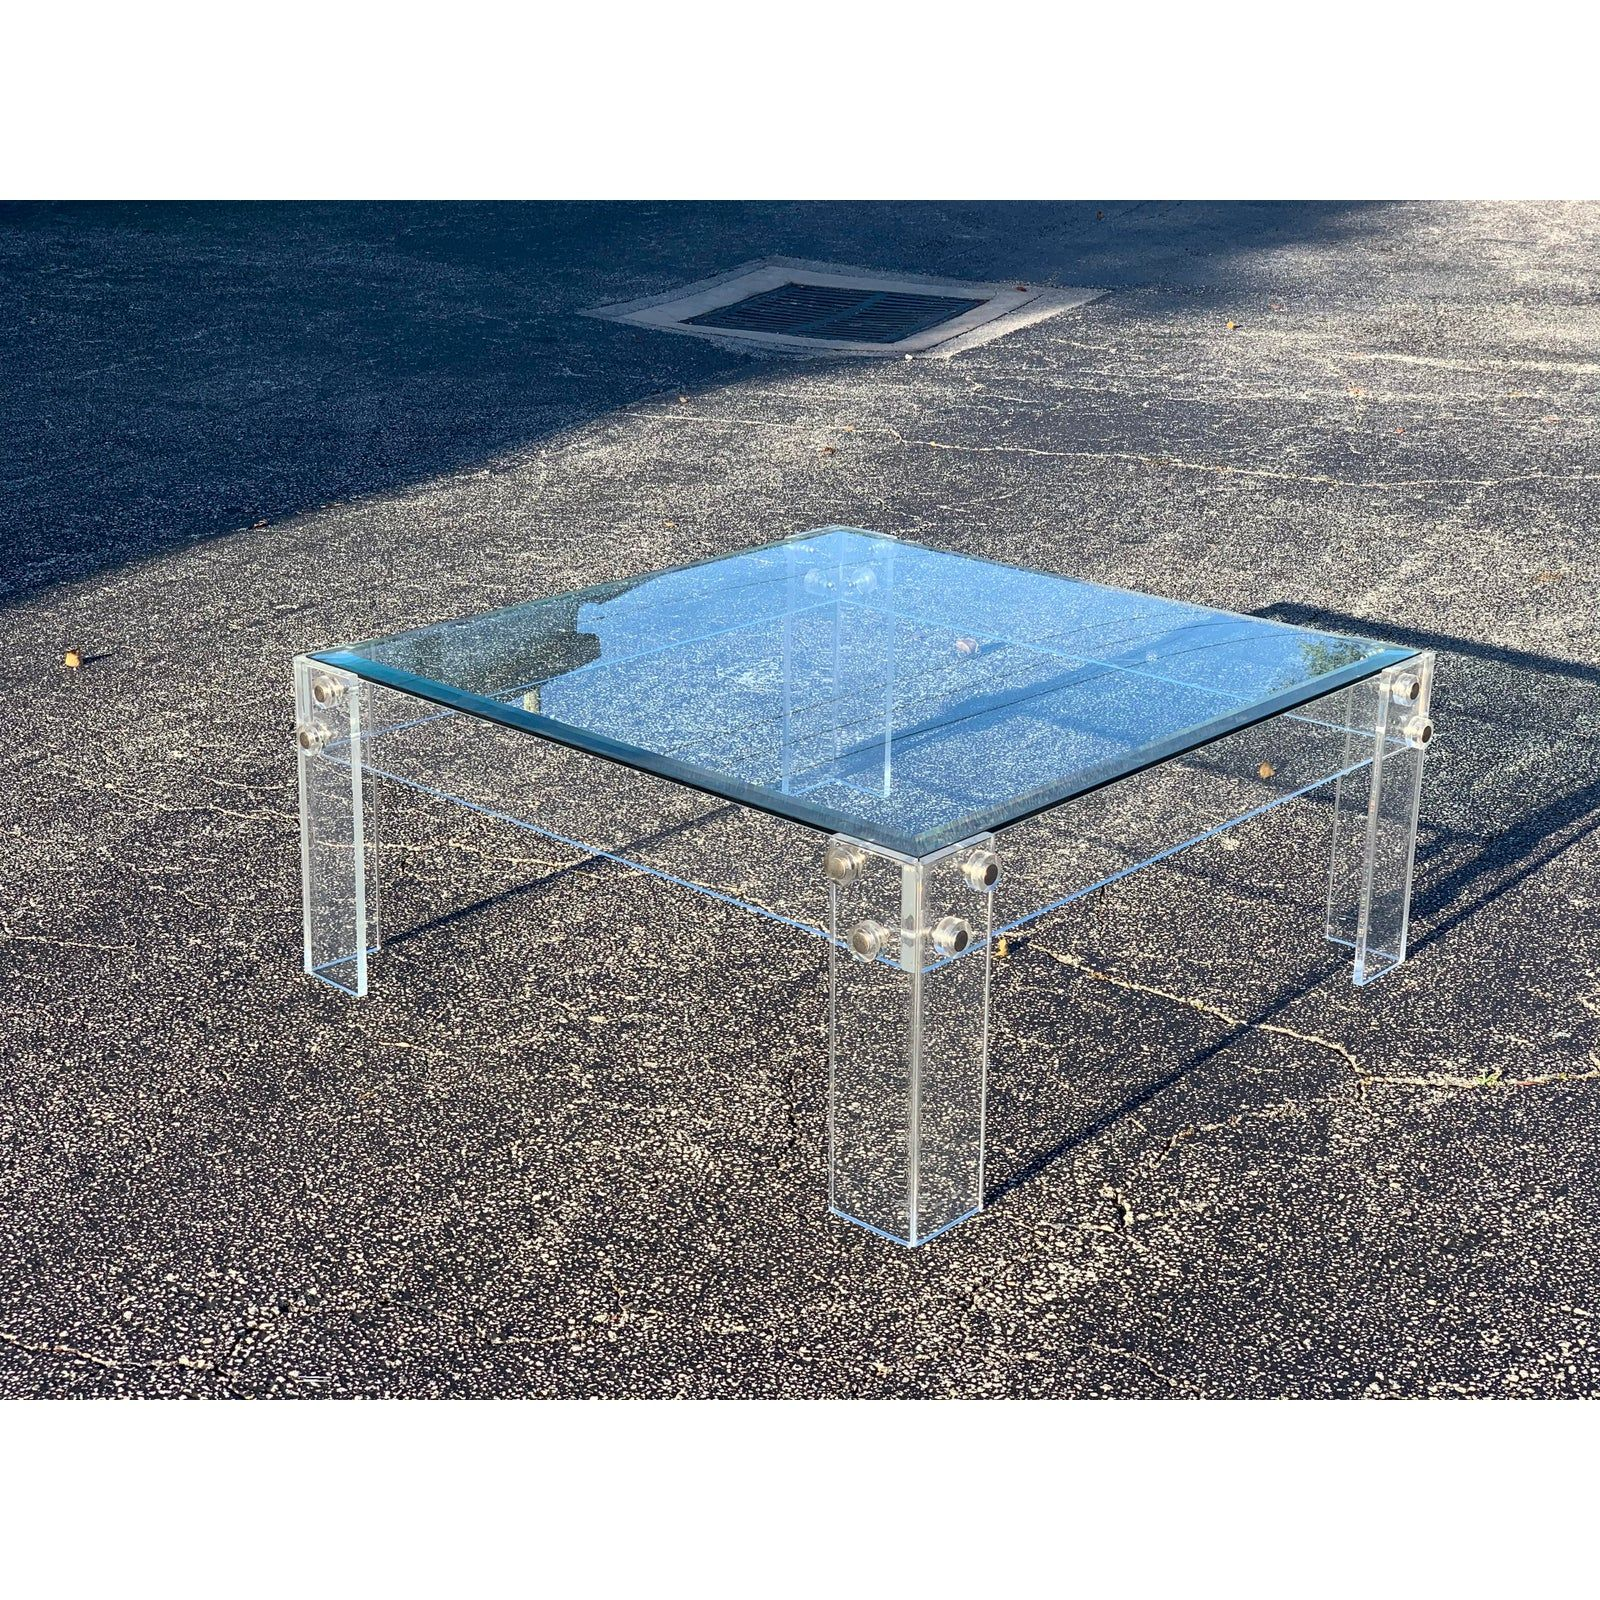 1970 S Lucite And Glass Modern Coffee Table Modern Glass Coffee Table Modern Coffee Tables Coffee Table [ 1600 x 1600 Pixel ]